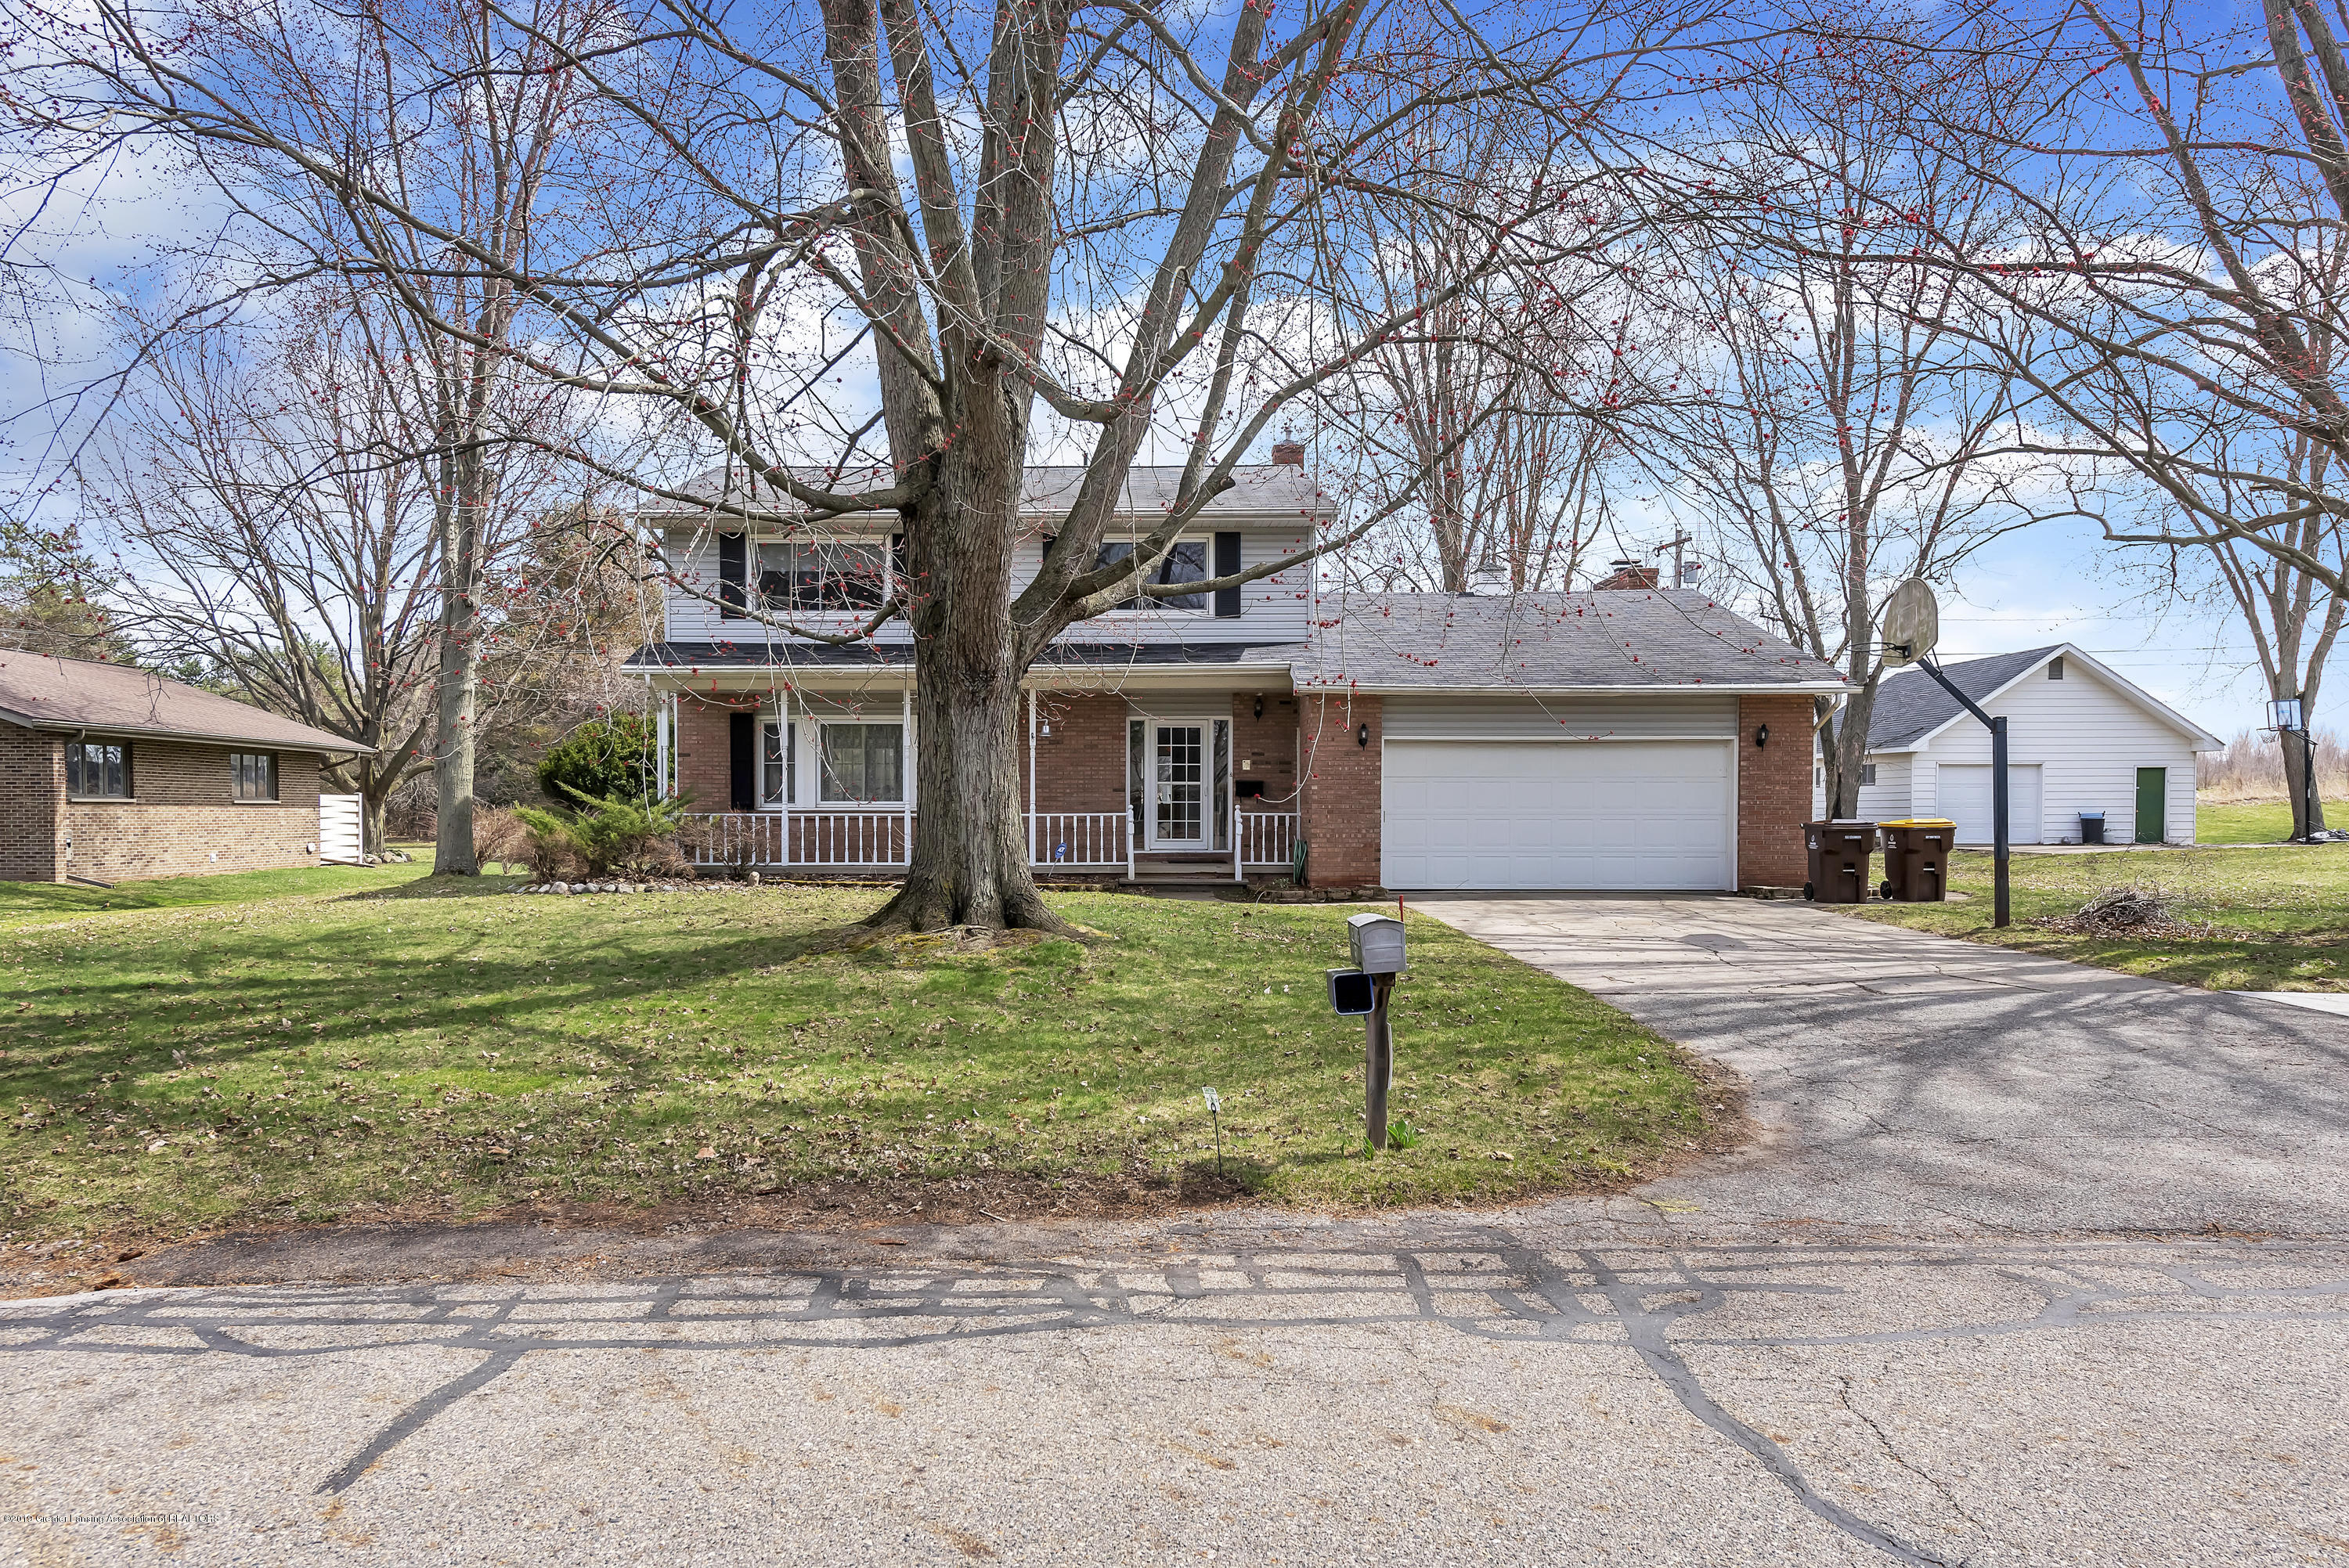 601 Raeburn Rd - 601-Raeburn-Road-Eaton-Rapids-Michigan-w - 3